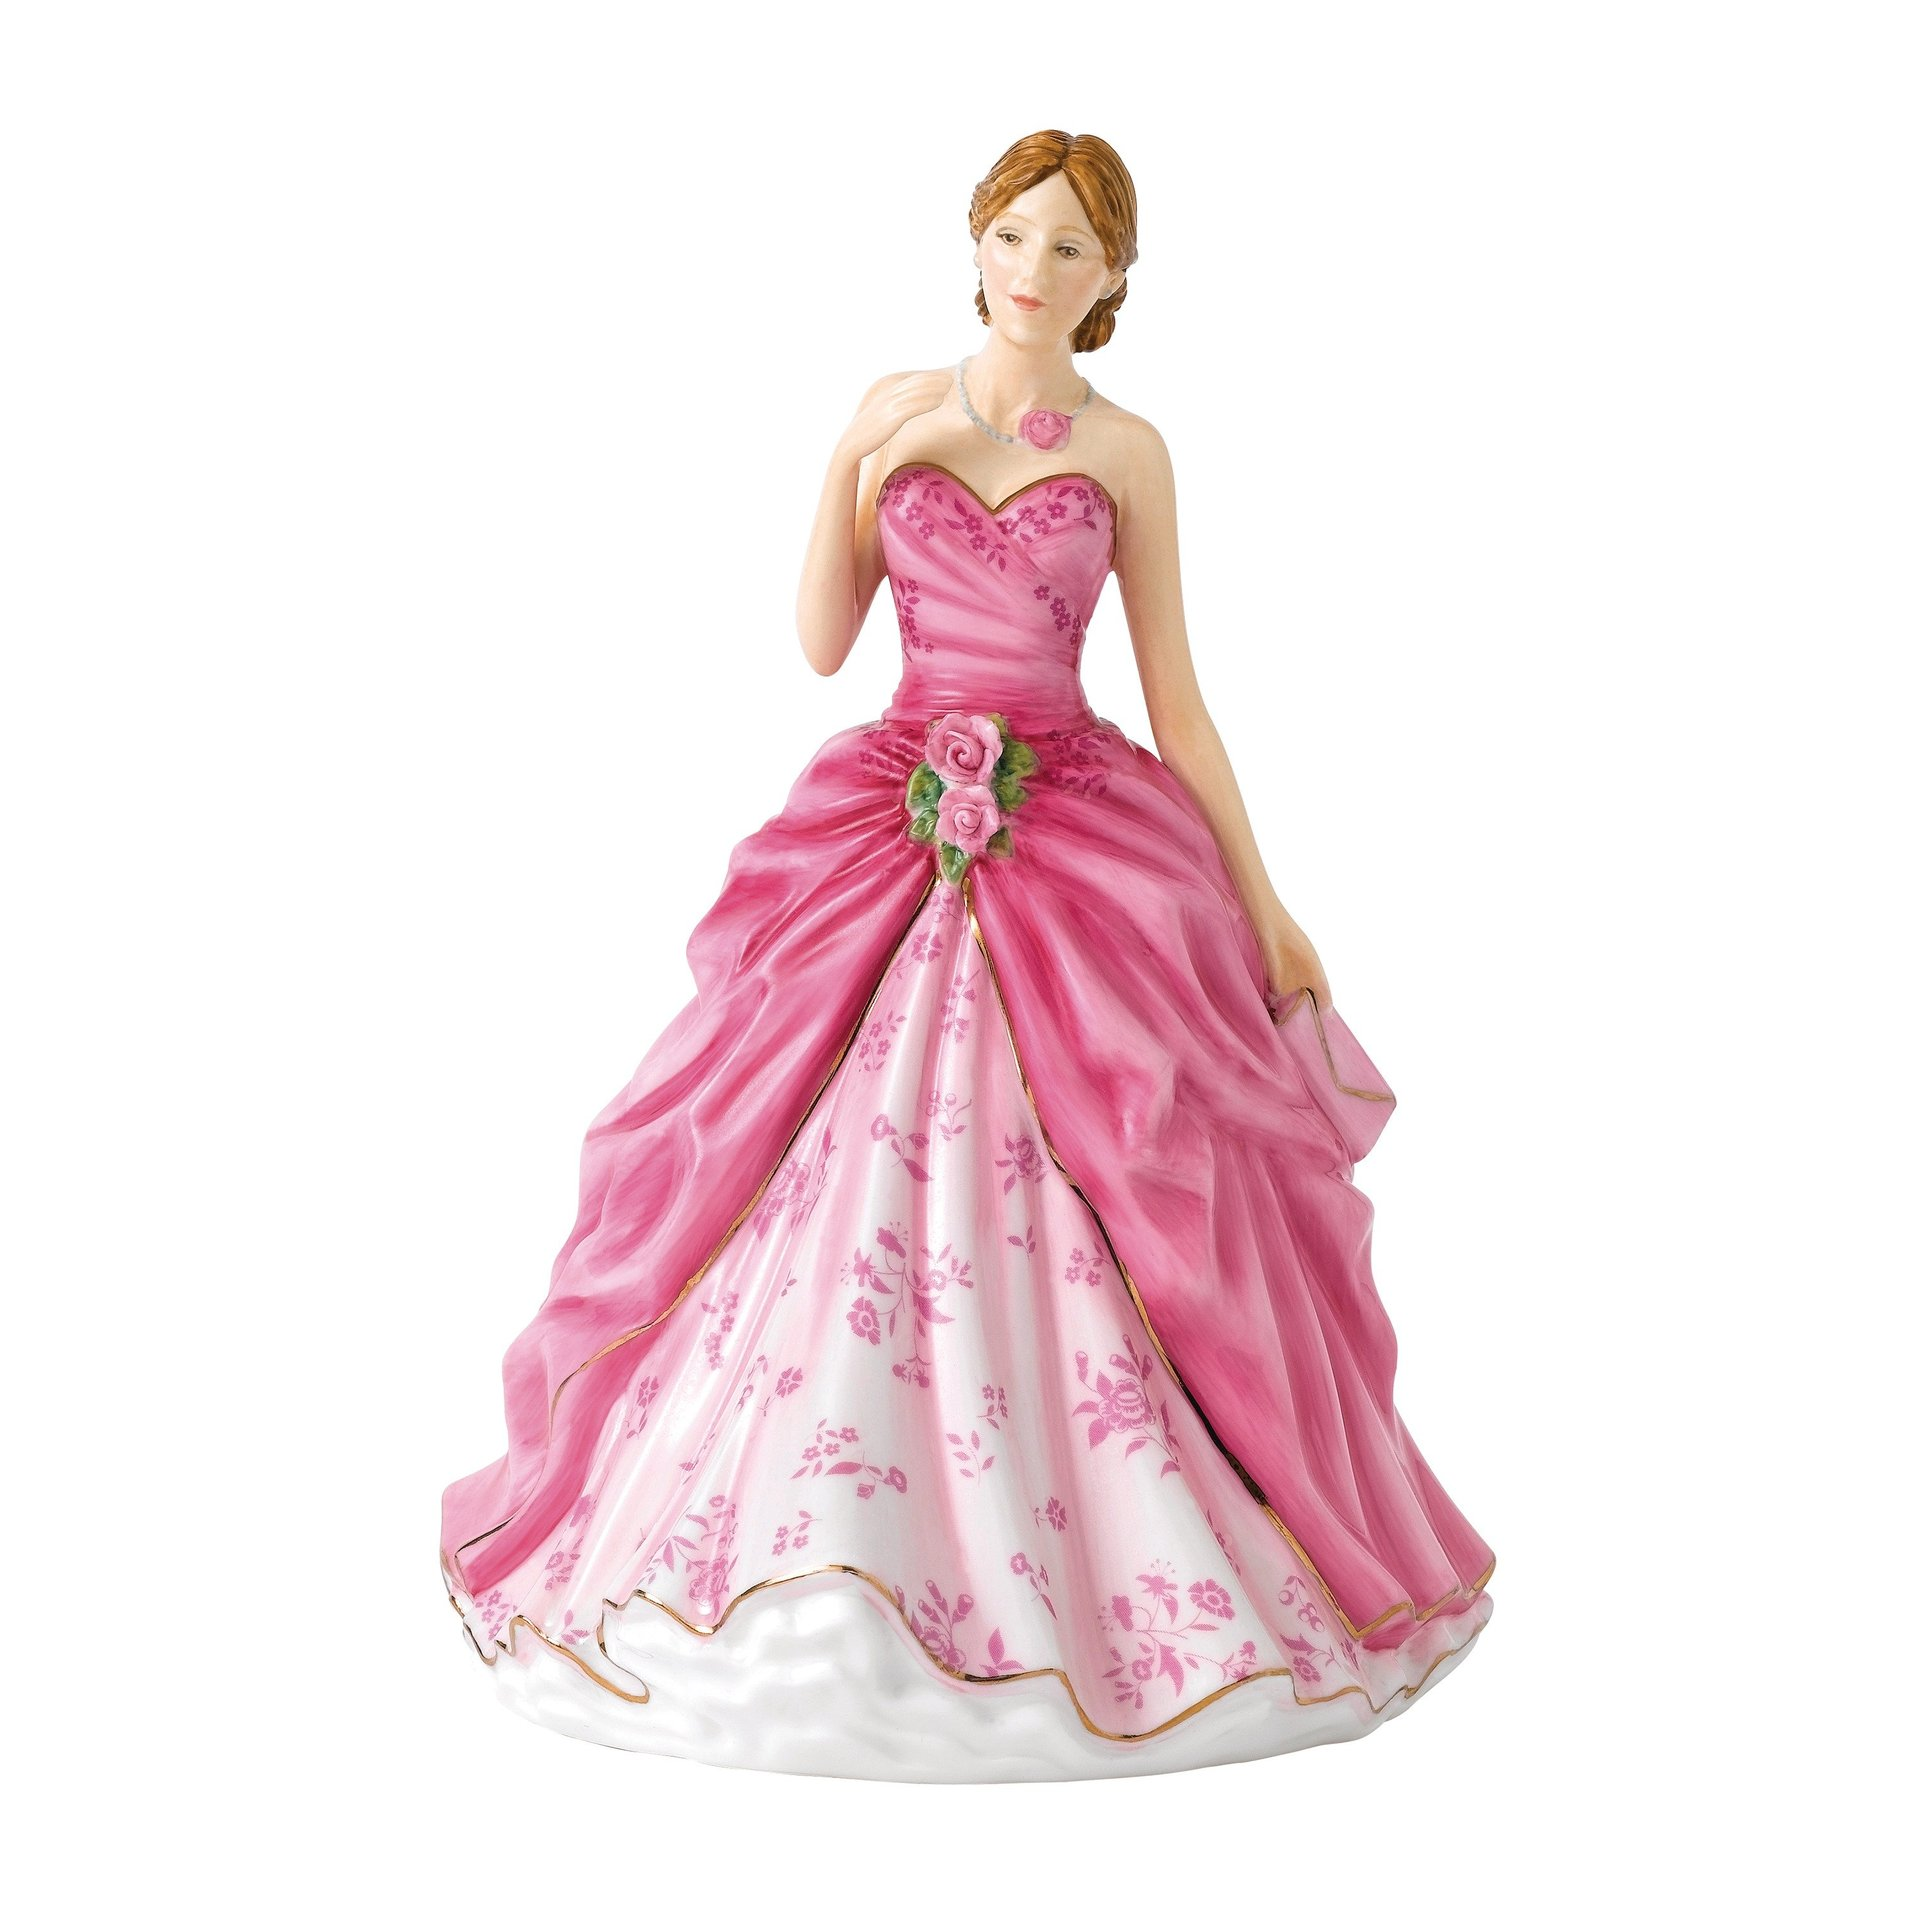 ROYAL DOULTON 2017 PETITE FIGURINE OF THE YEAR GRACE